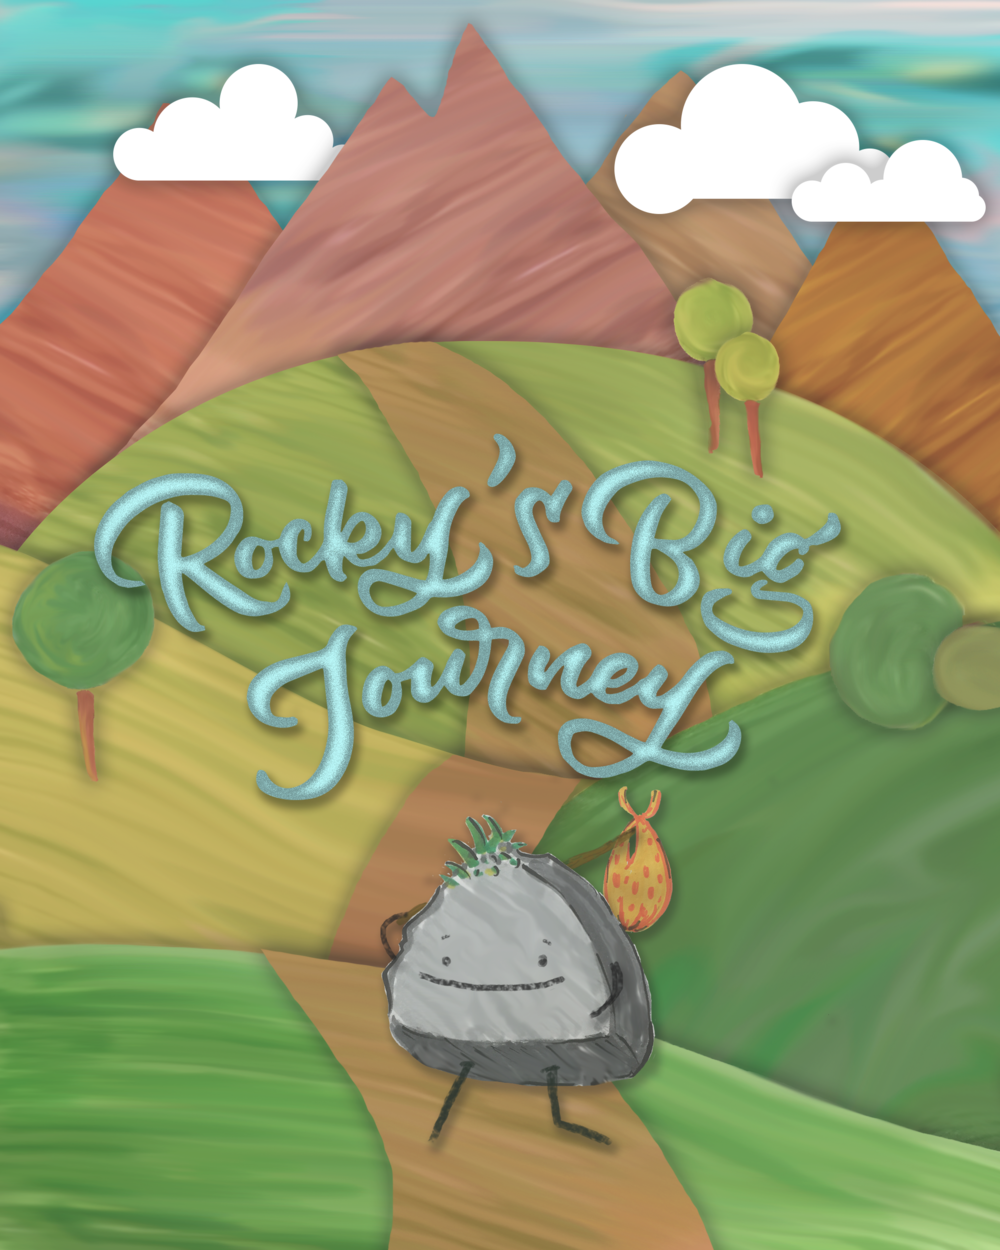 Rocky's Big Journey Children's Book by Noah Camp